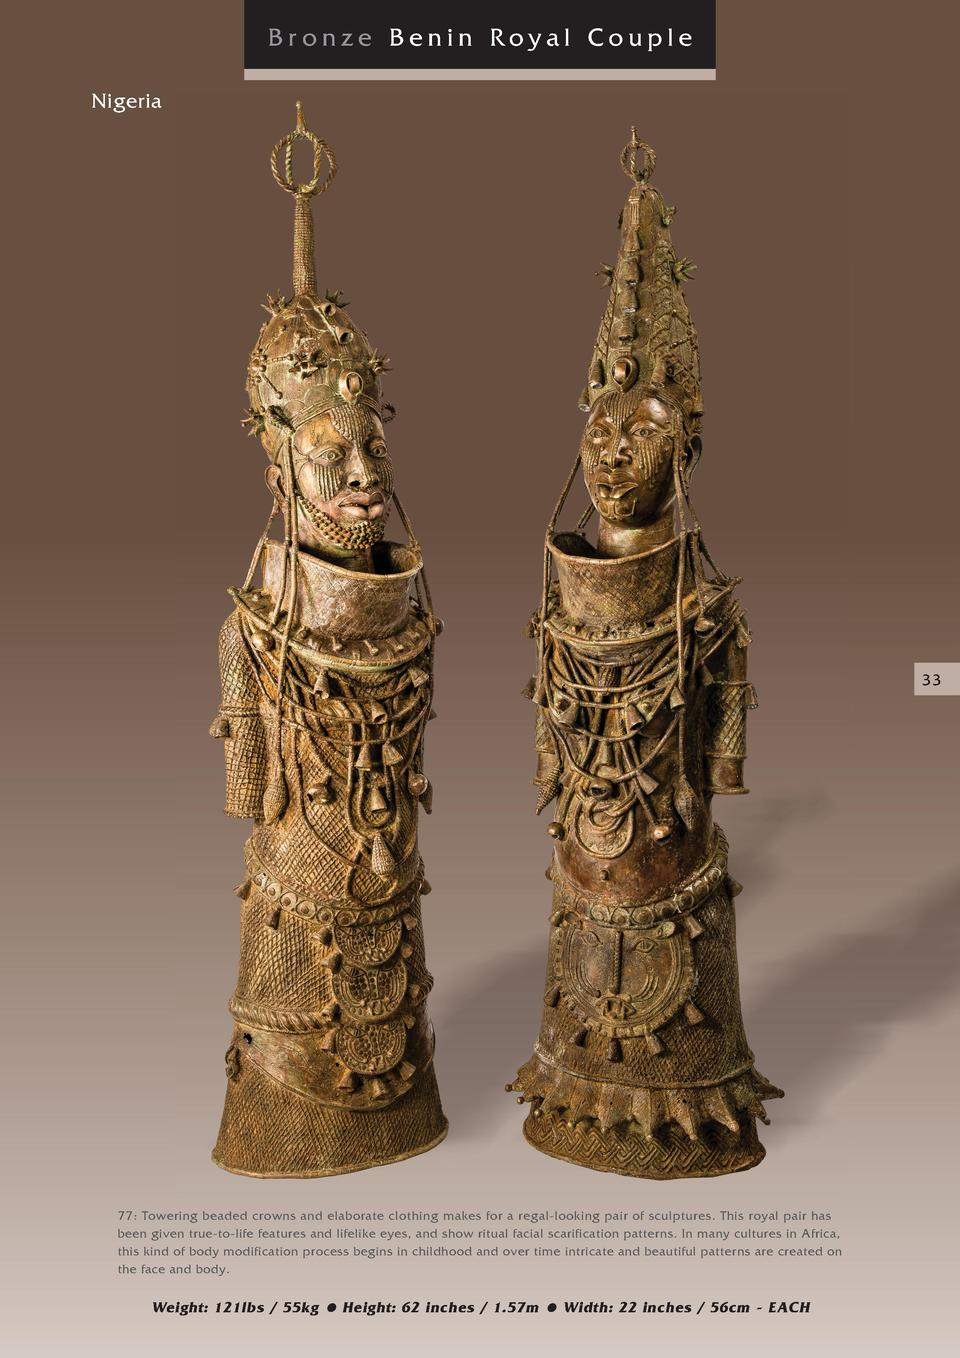 Bronze Benin Royal Couple Nigeria  33  77  Towering beaded crowns and elaborate clothing makes for a regal-looking pair of...